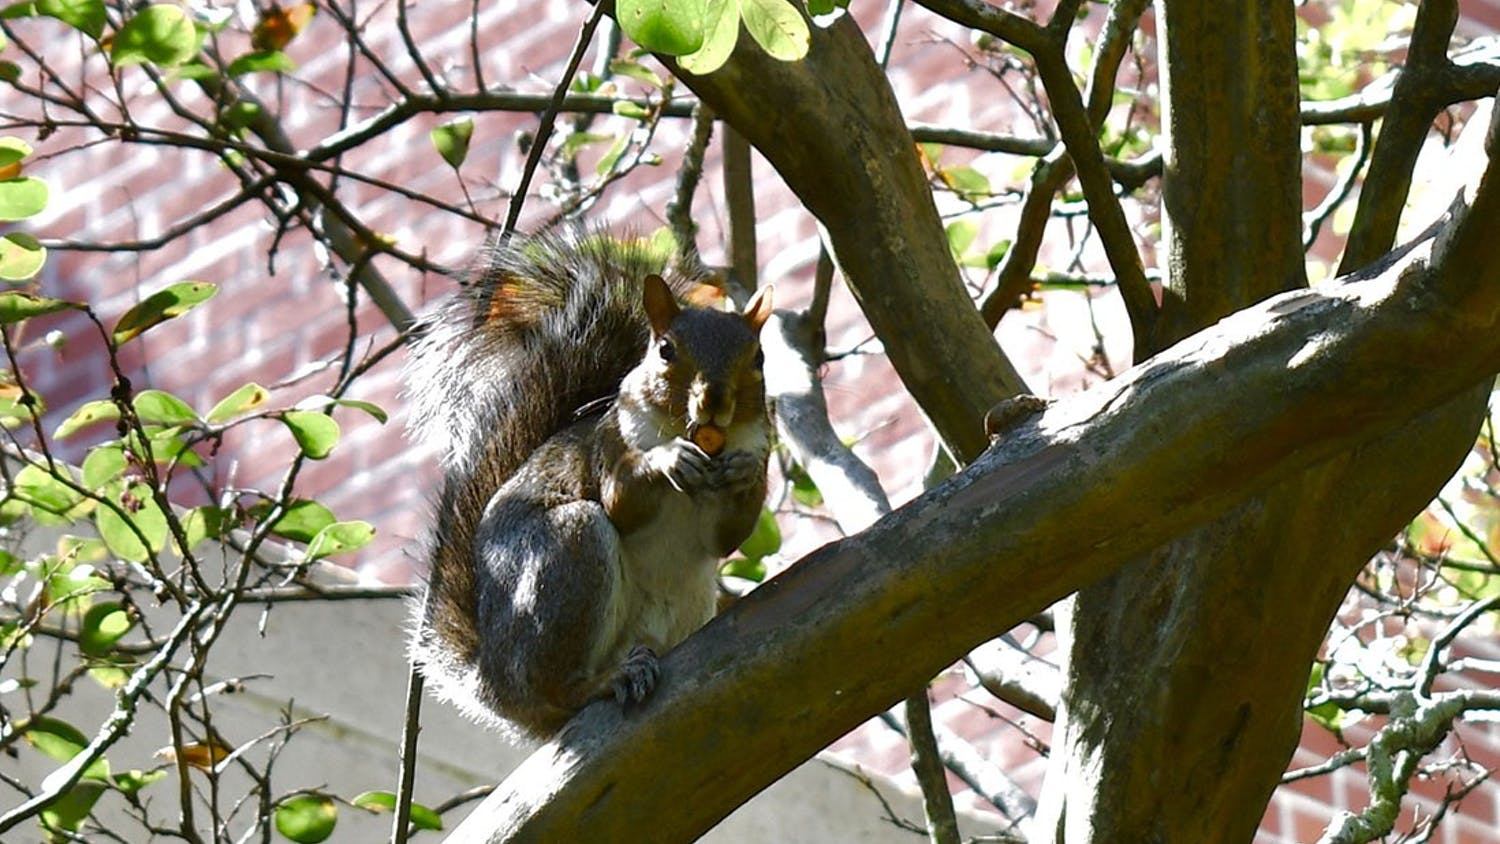 One of the campus squirrels eats a nut while sitting on a tree branch outside of Russell House.